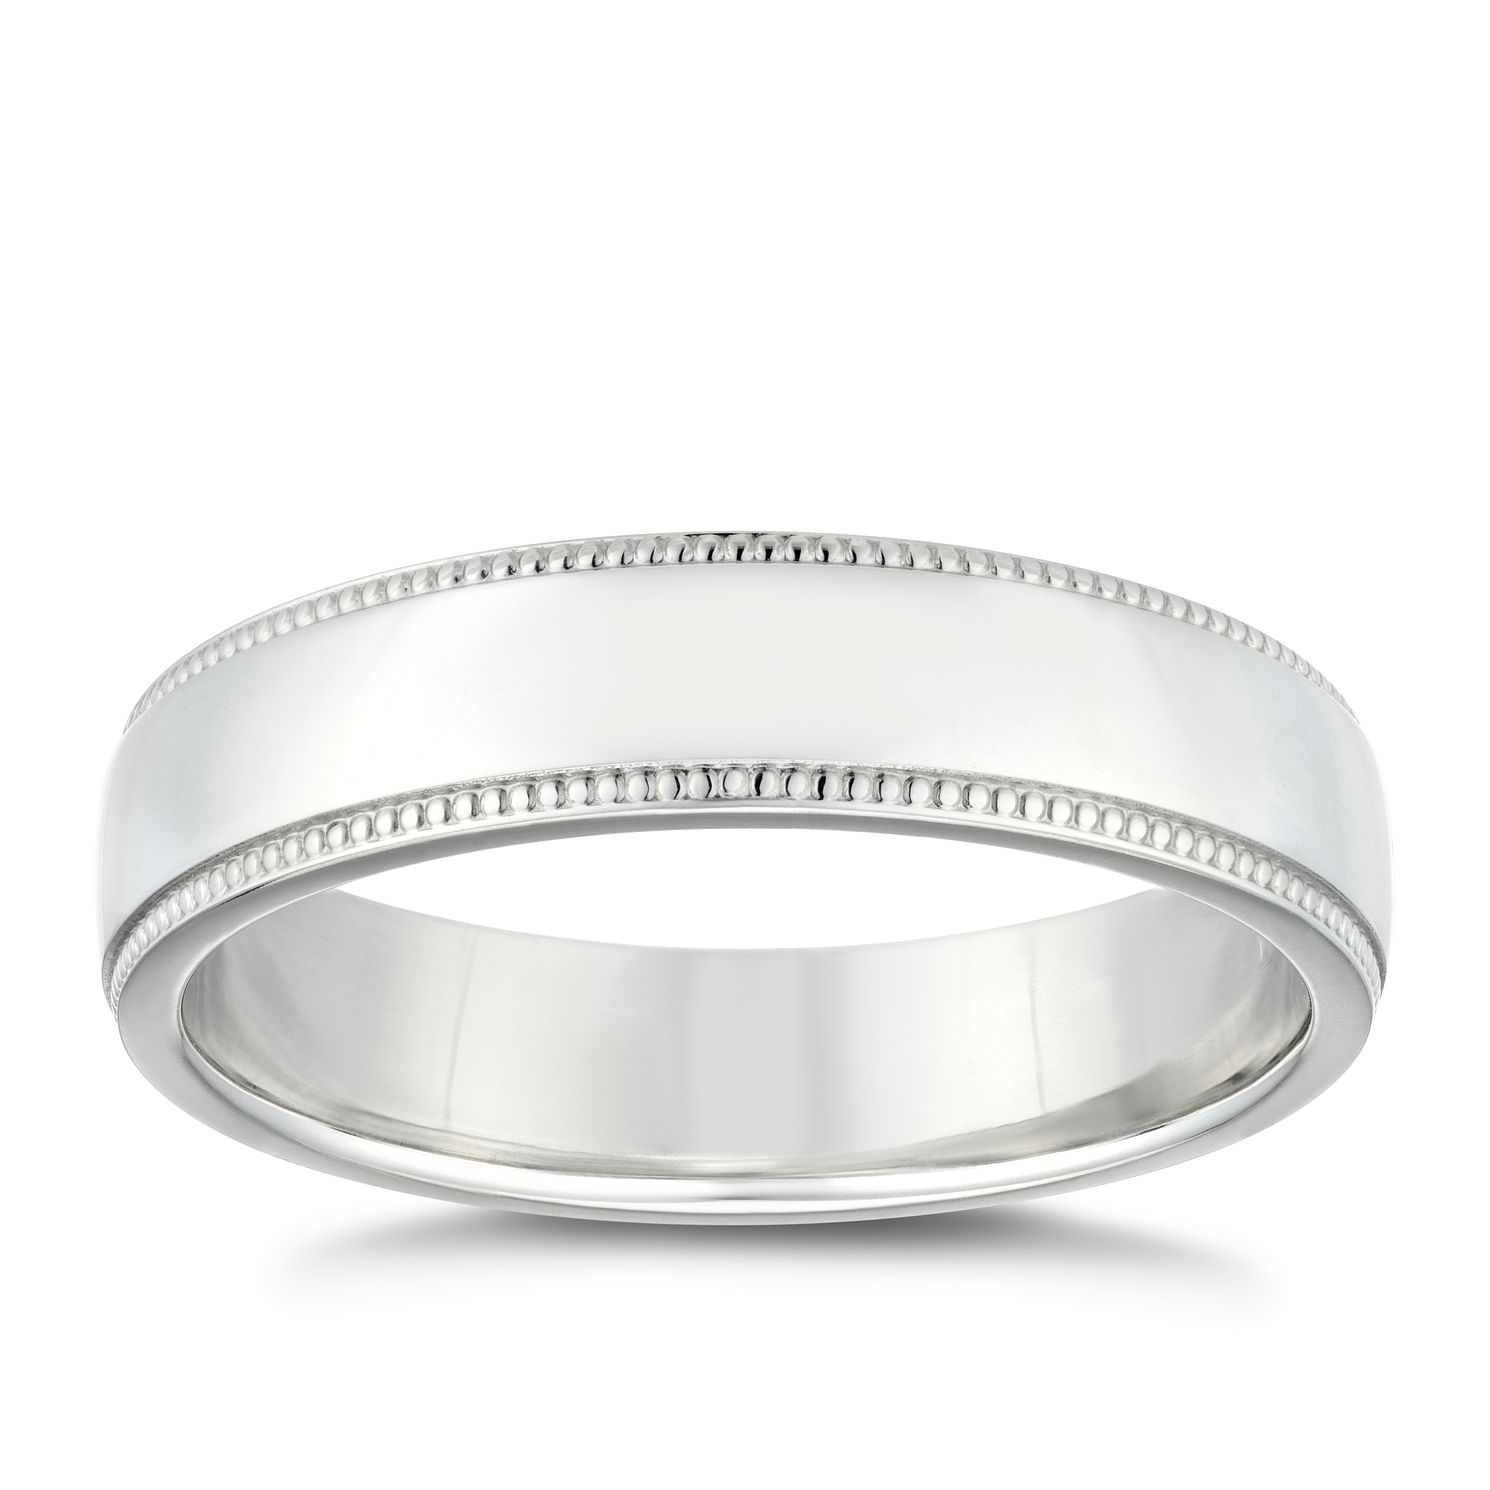 Silver Polished 5mm Men's Milgrain Edge Ring - Product number 4937465